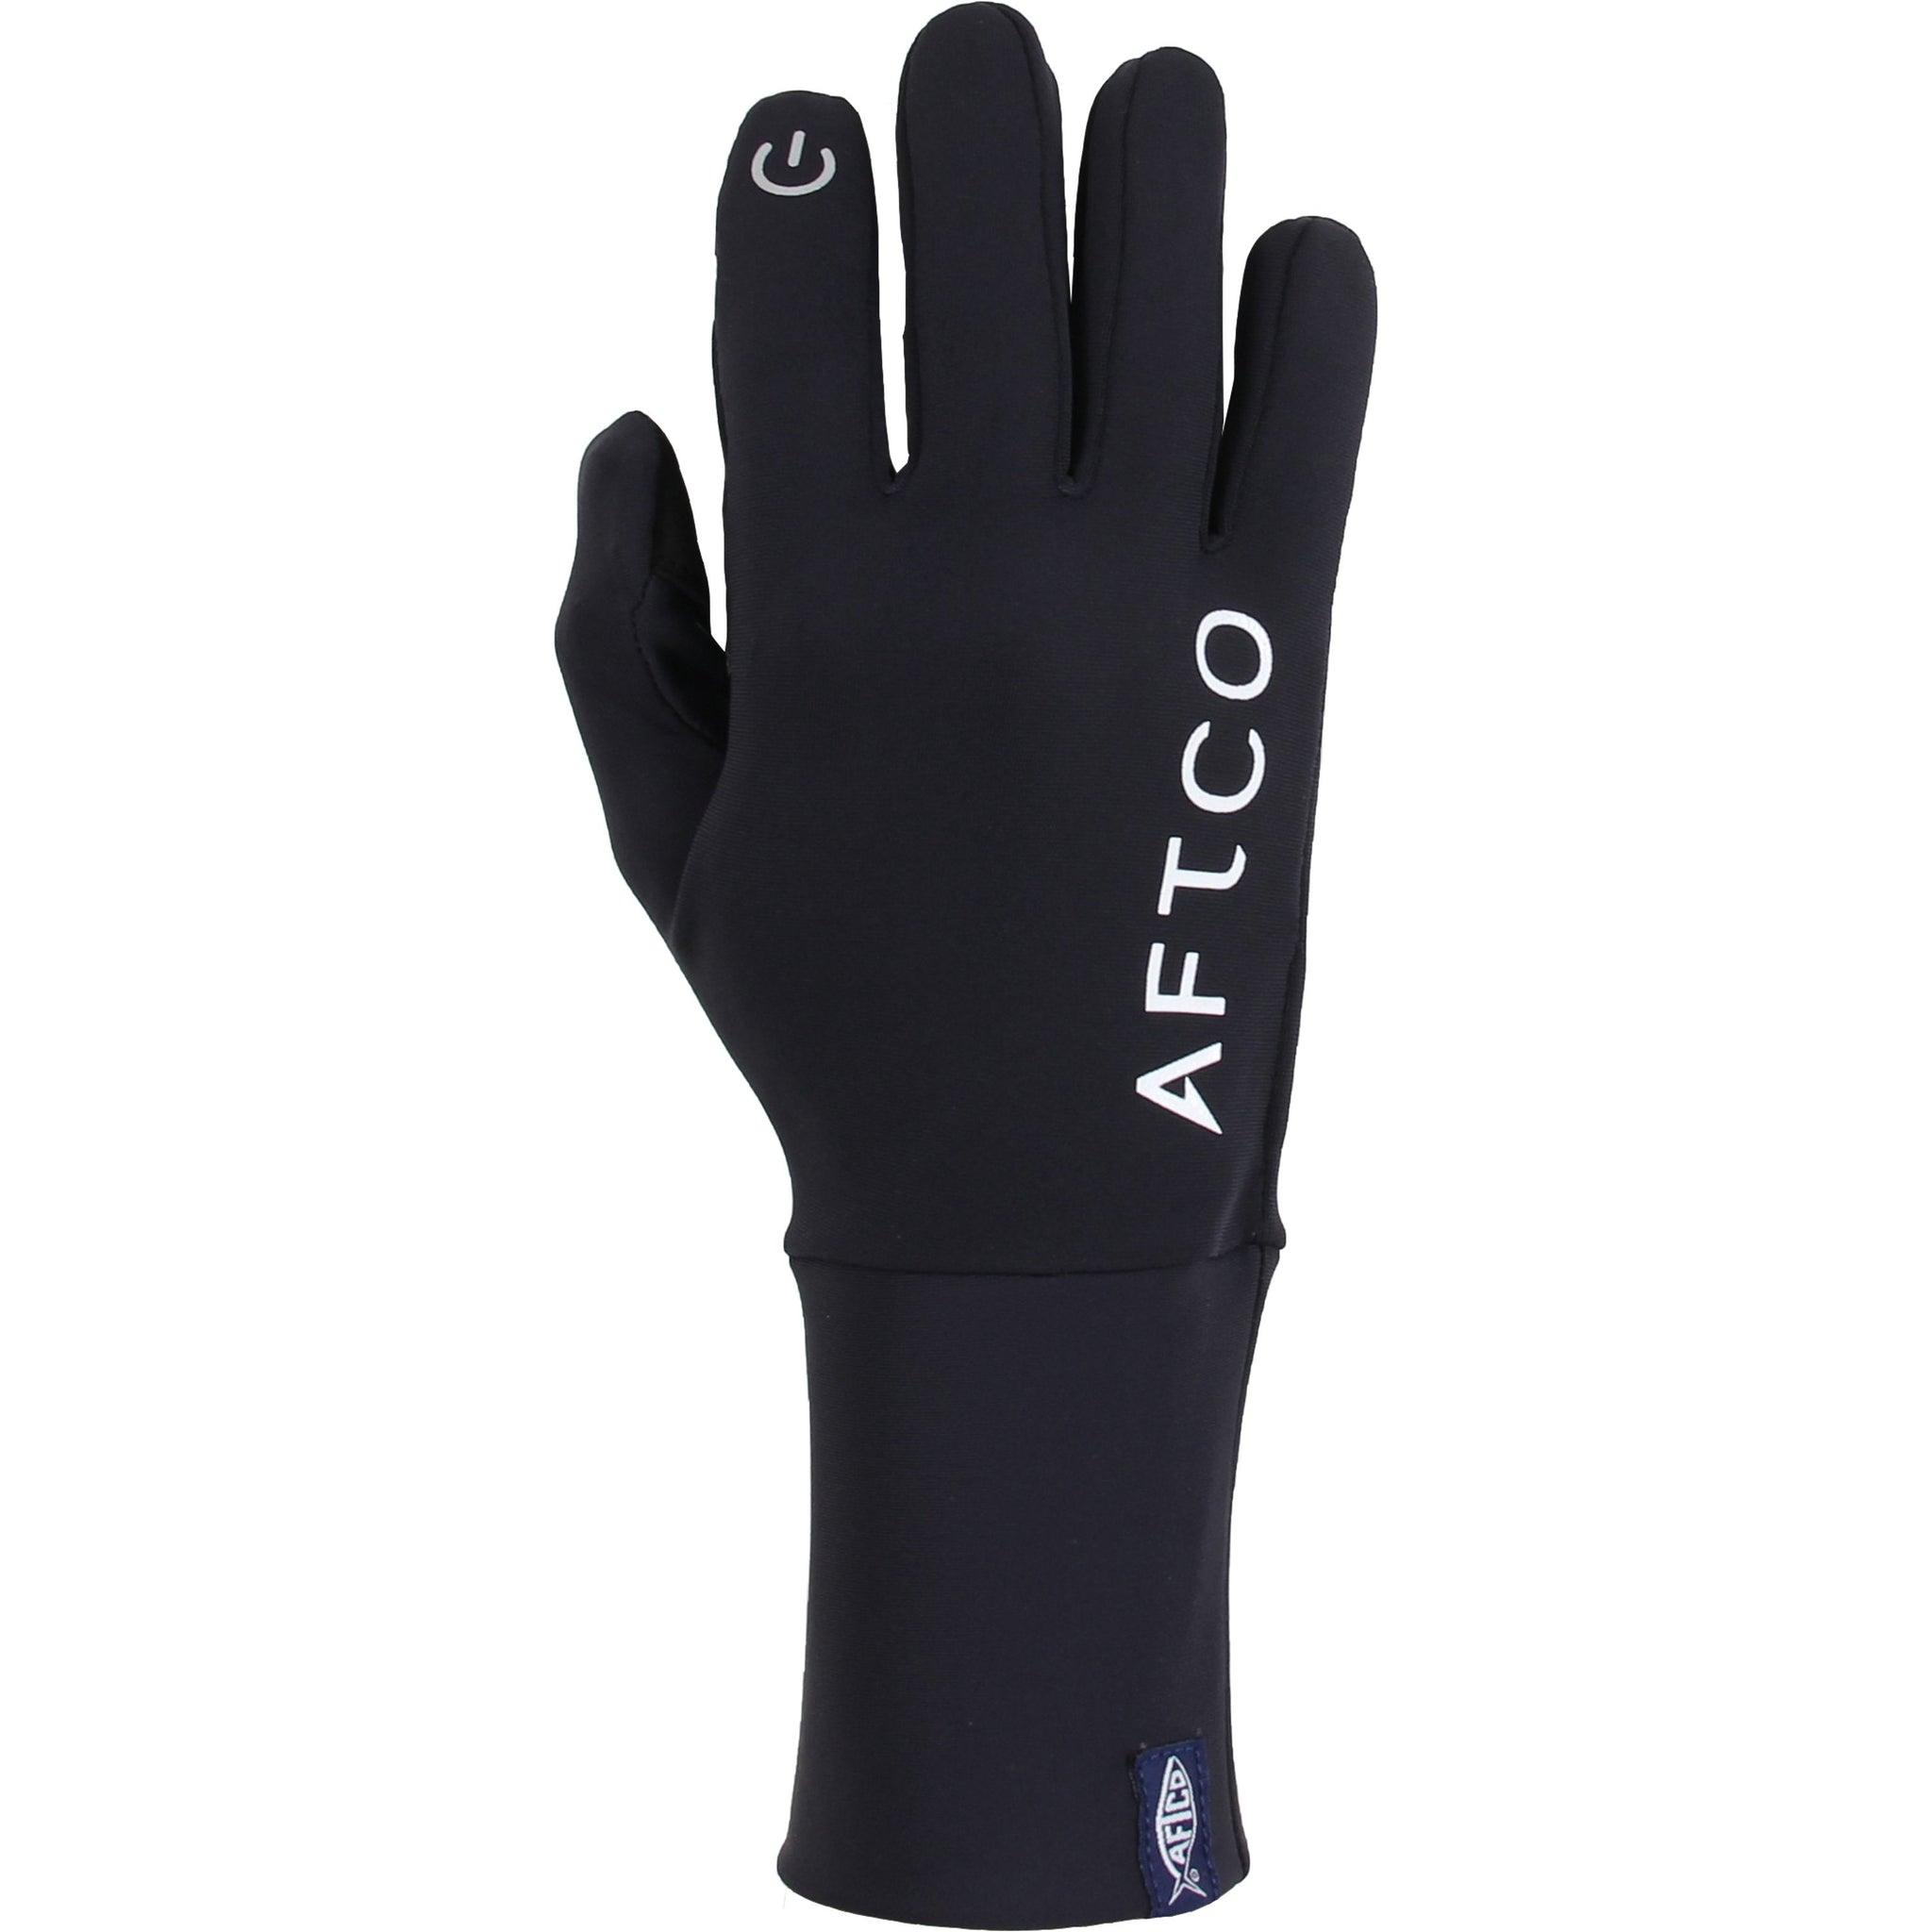 Thermaflex Cold Weather Gloves